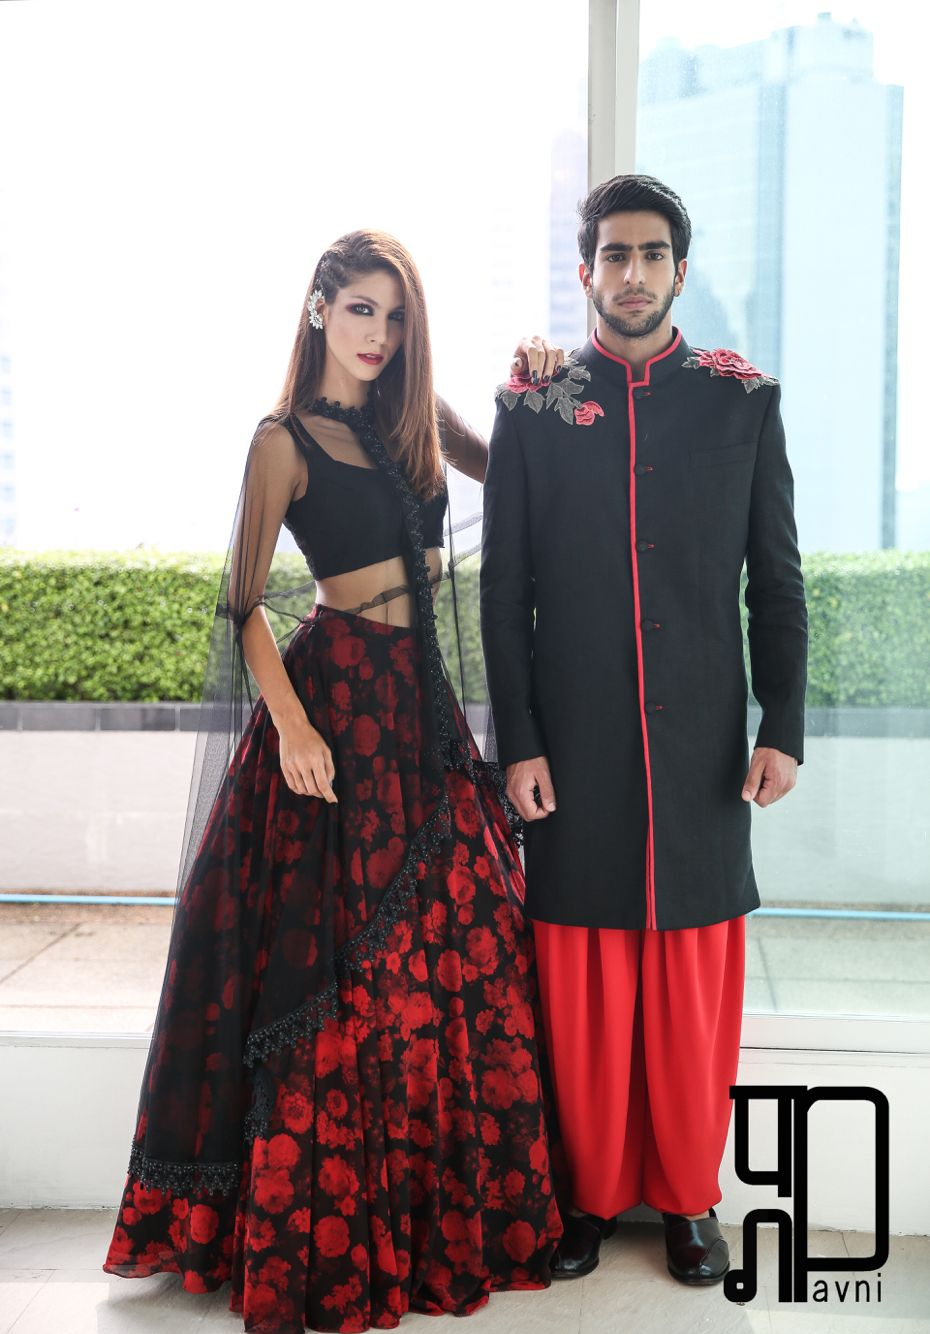 7d5056500dd35 On her  Flower-print lehenga with black leather crop top and a cape instead  of a dupatta. On him  Linen sherwani with rose embroidery at the shoulders